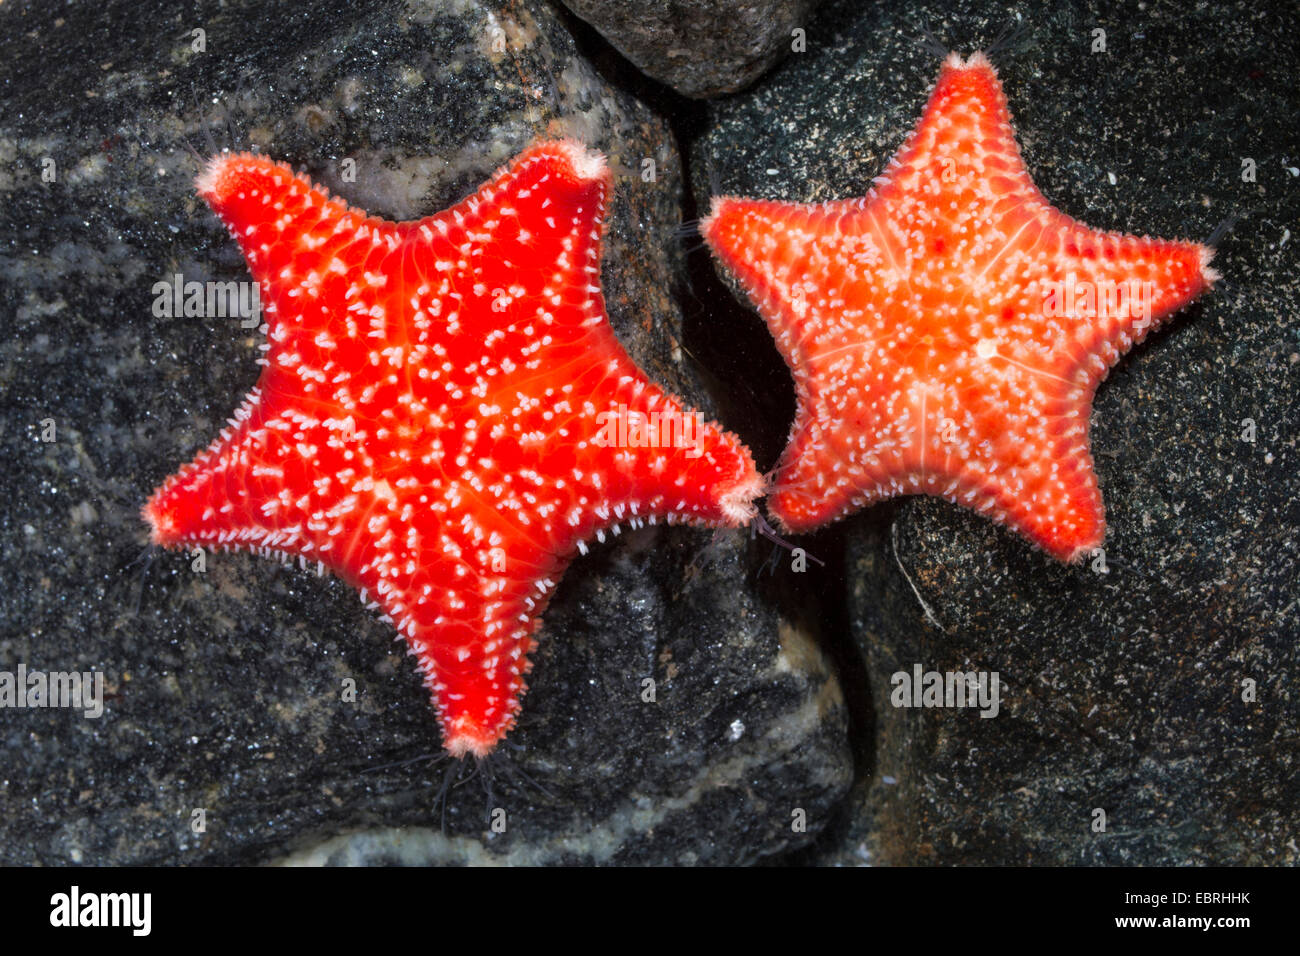 Red Cushion Star, Red cushion (Porania pulvillus), two individuals - Stock Image